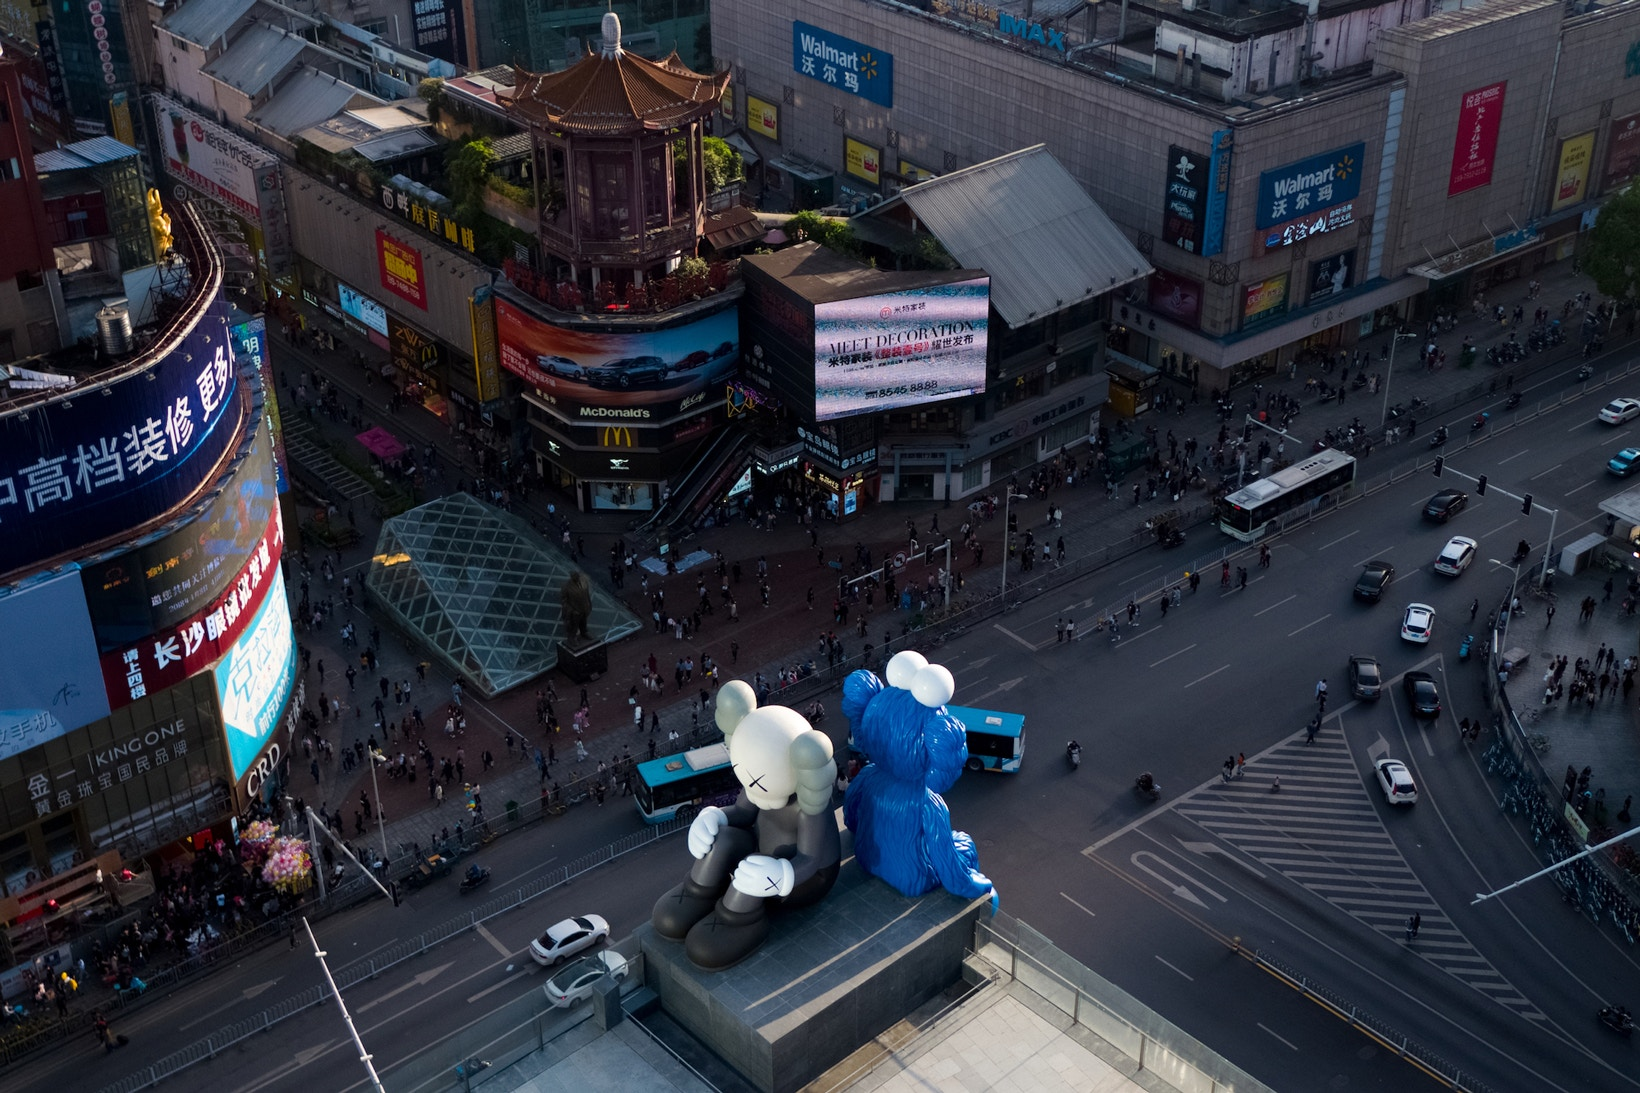 kaws-seeing-watching-changsha-ifs-permanent-sculptures-china-4